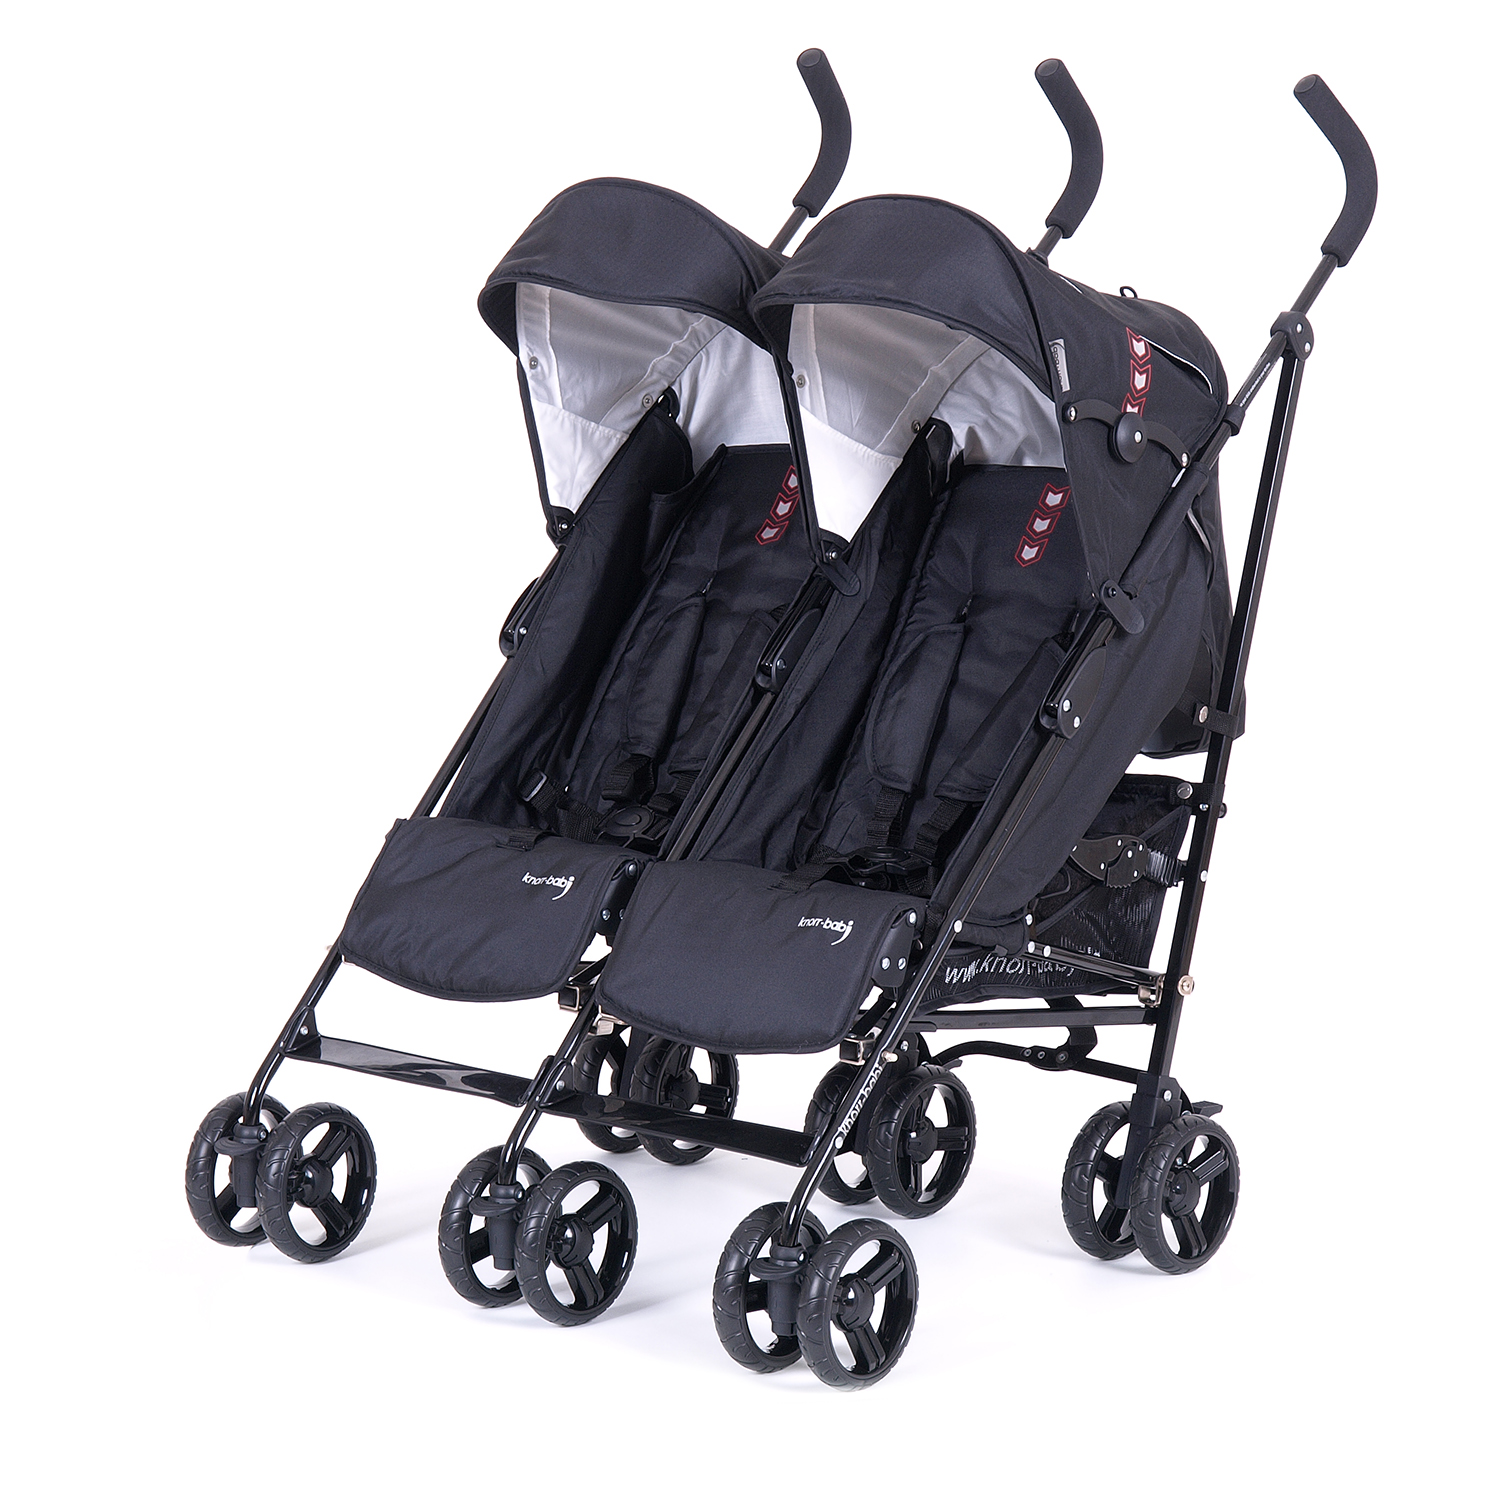 knorr baby gmbh buggy geschwisterwagen side by side. Black Bedroom Furniture Sets. Home Design Ideas